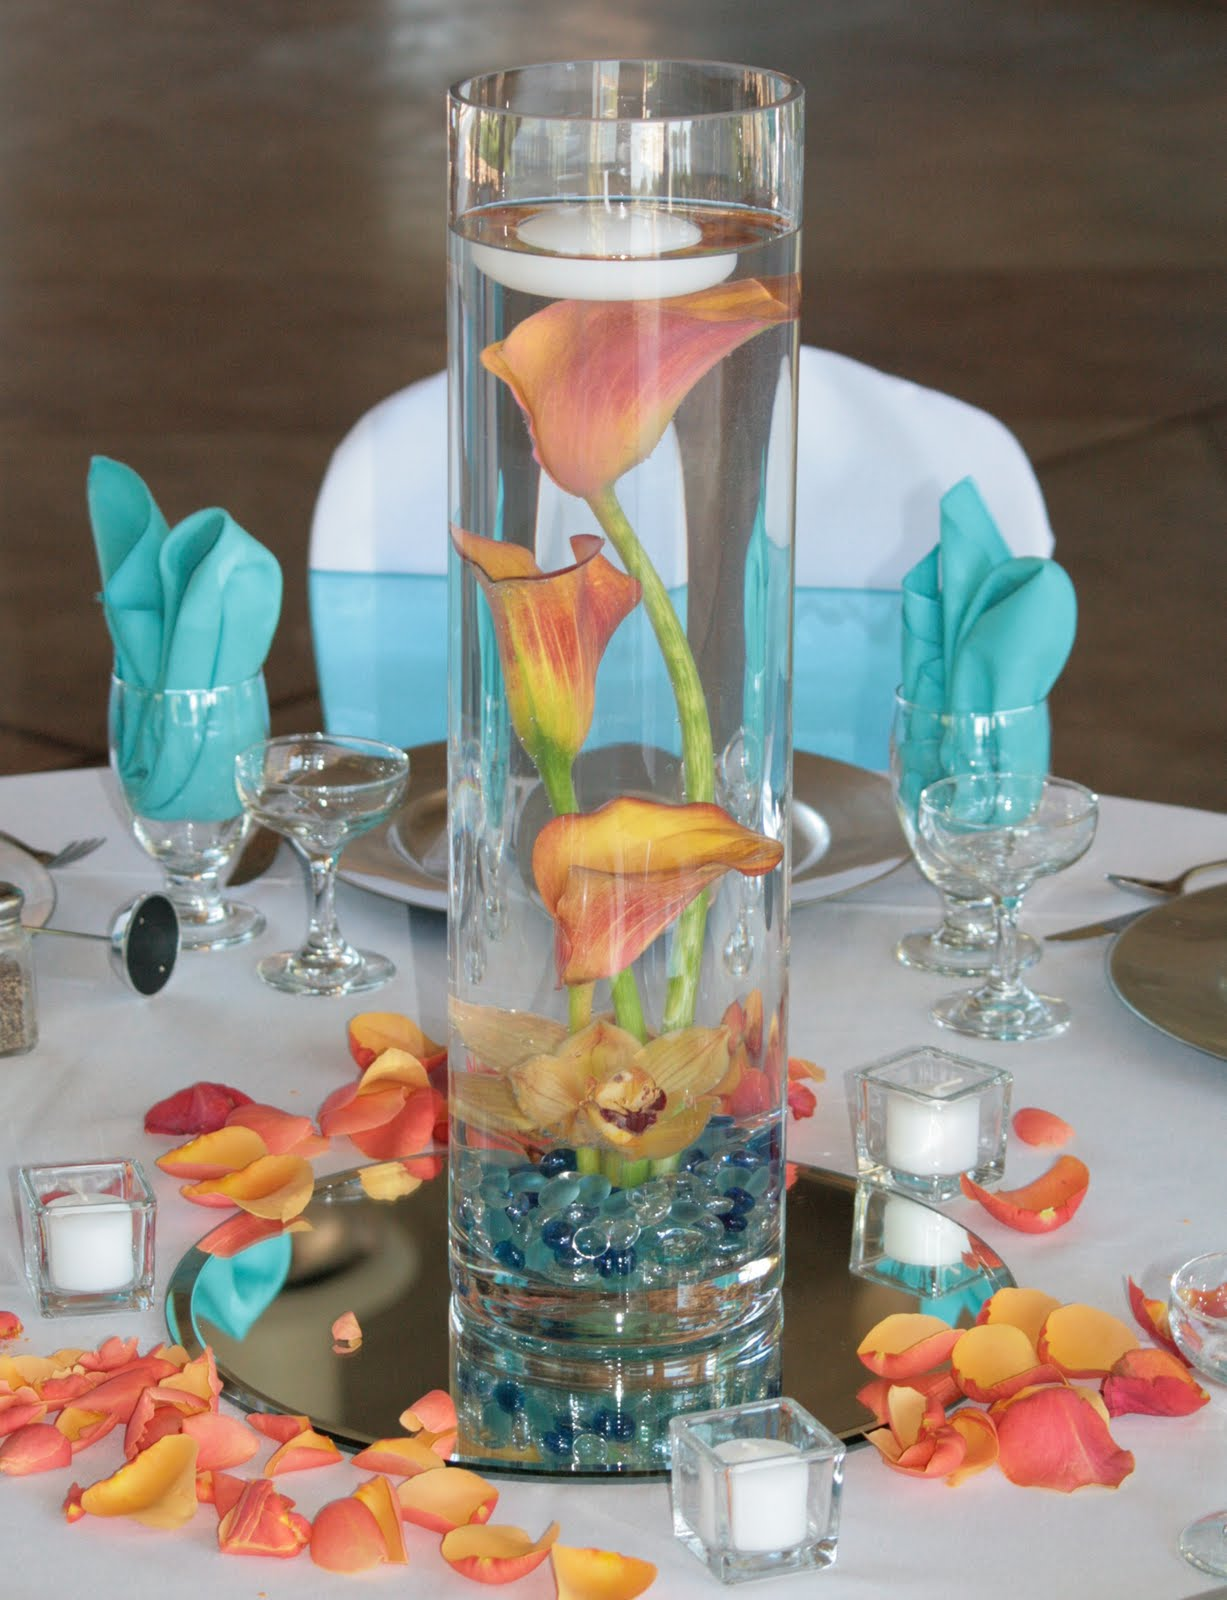 Wedding Table Turquoise Wedding Table Decorations similiar turquoise and coral flower centerpieces keywords wedding reception ideas